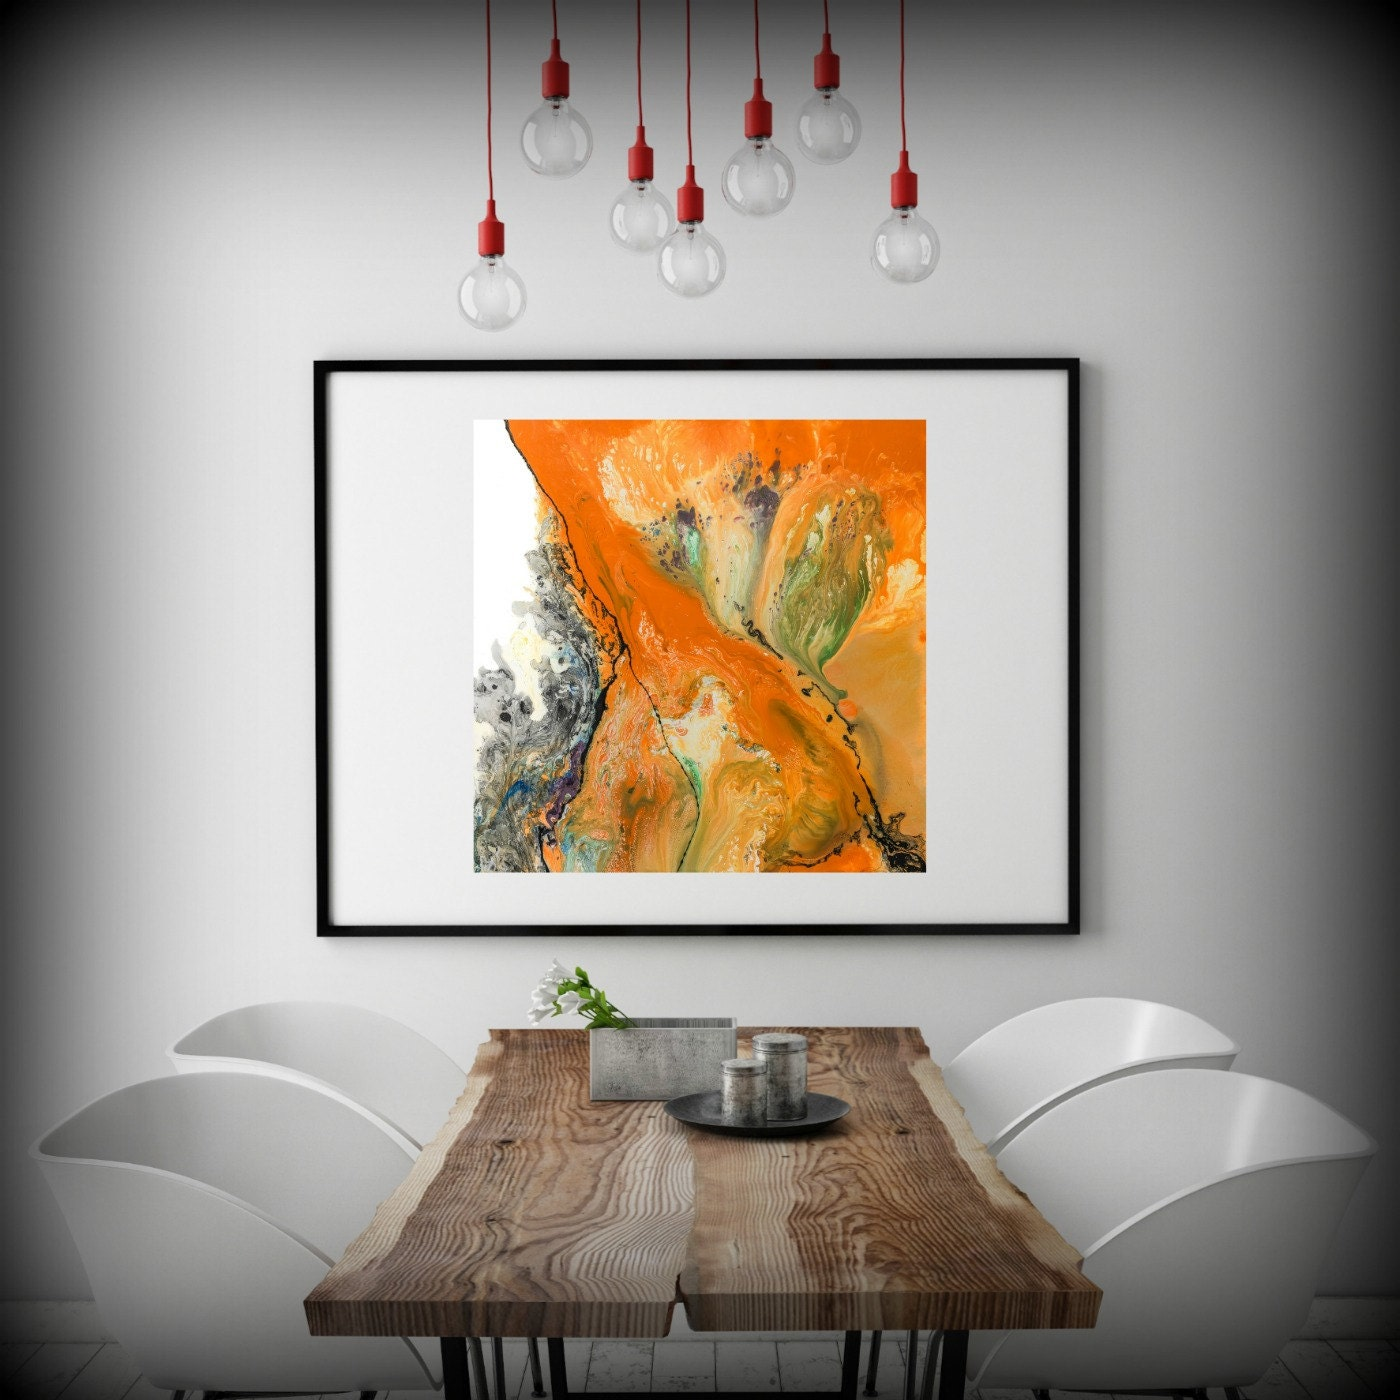 decor walls shop decorate room ideasmodern orange houzz home luxury wall your with ideas pinterest design to tips how decorating photos